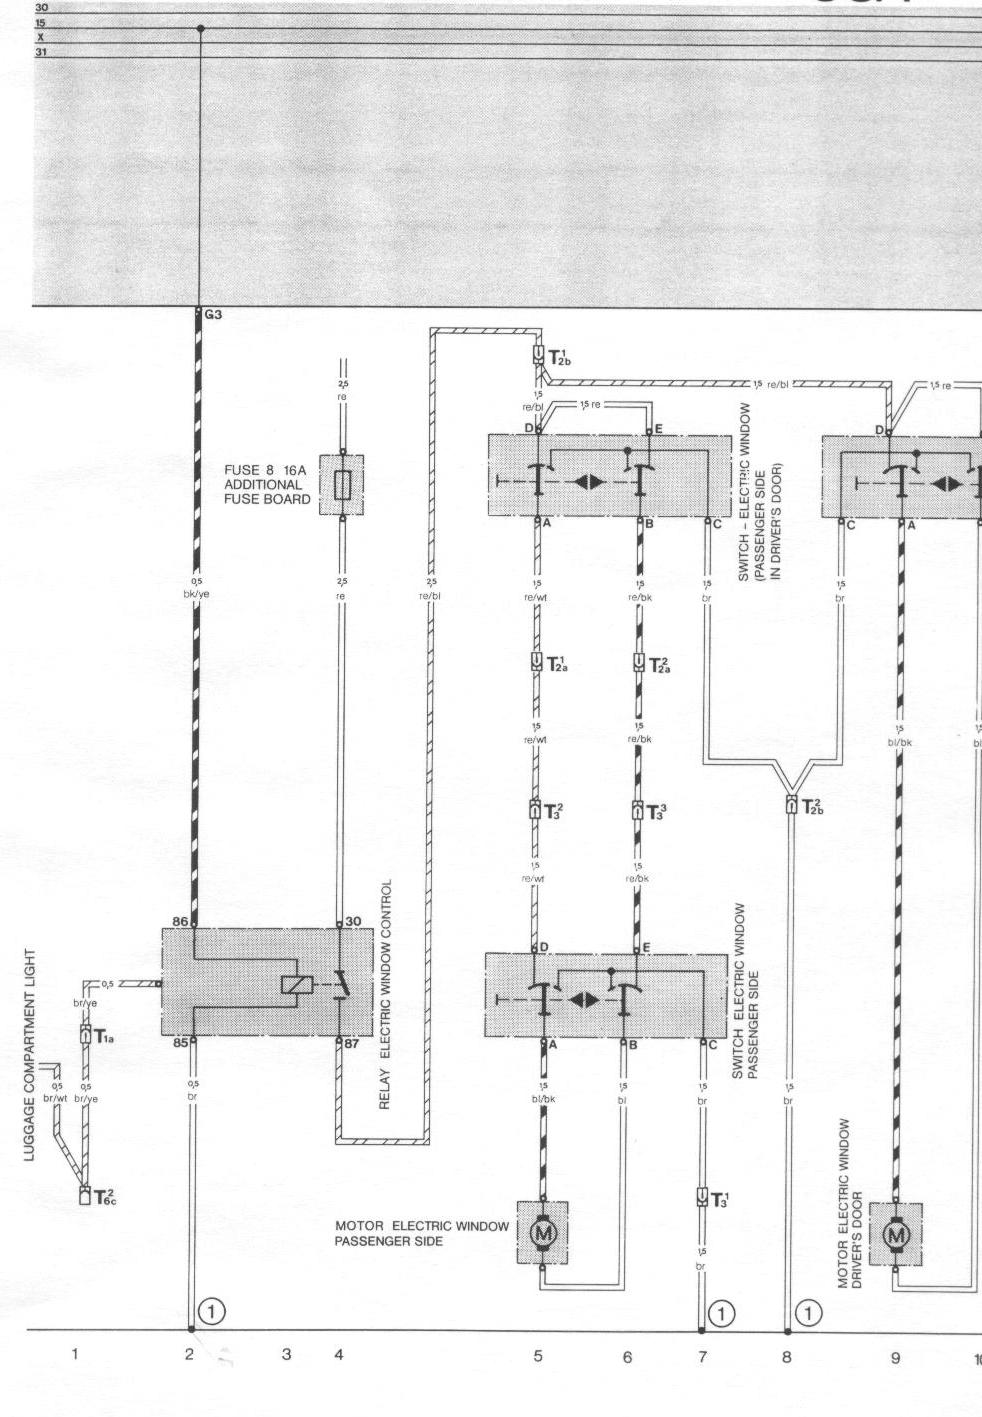 hight resolution of  porsche 944 fuse box diagram electric windows page 1